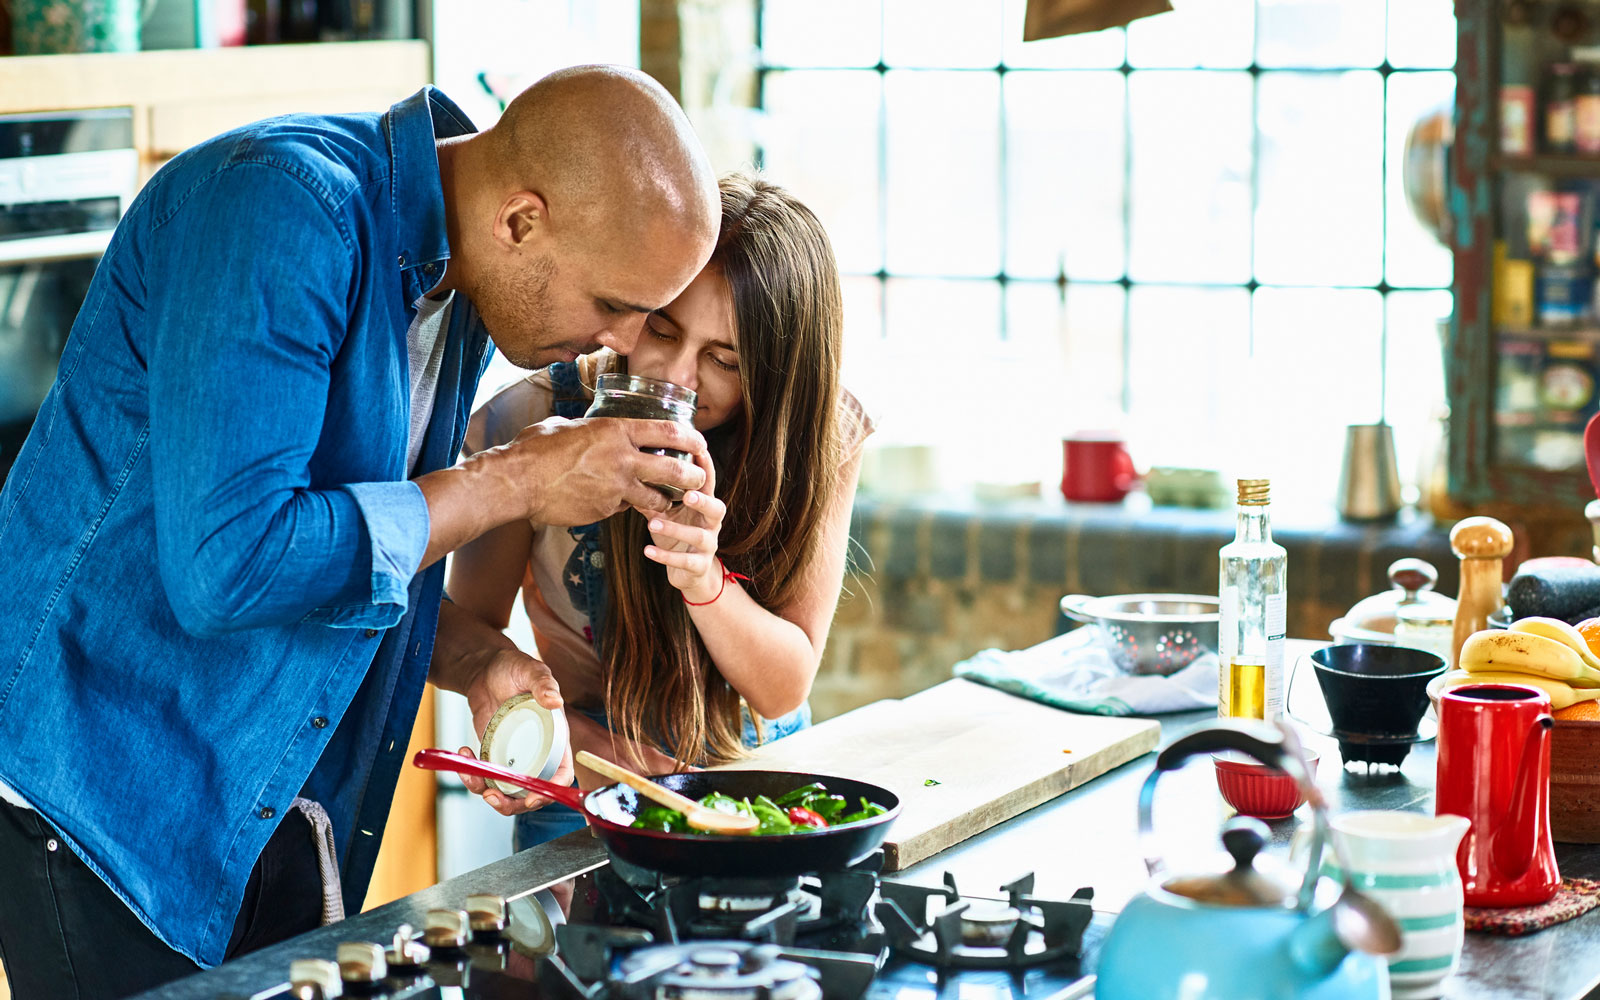 Father and daughter smelling spices while cooking in kitchen